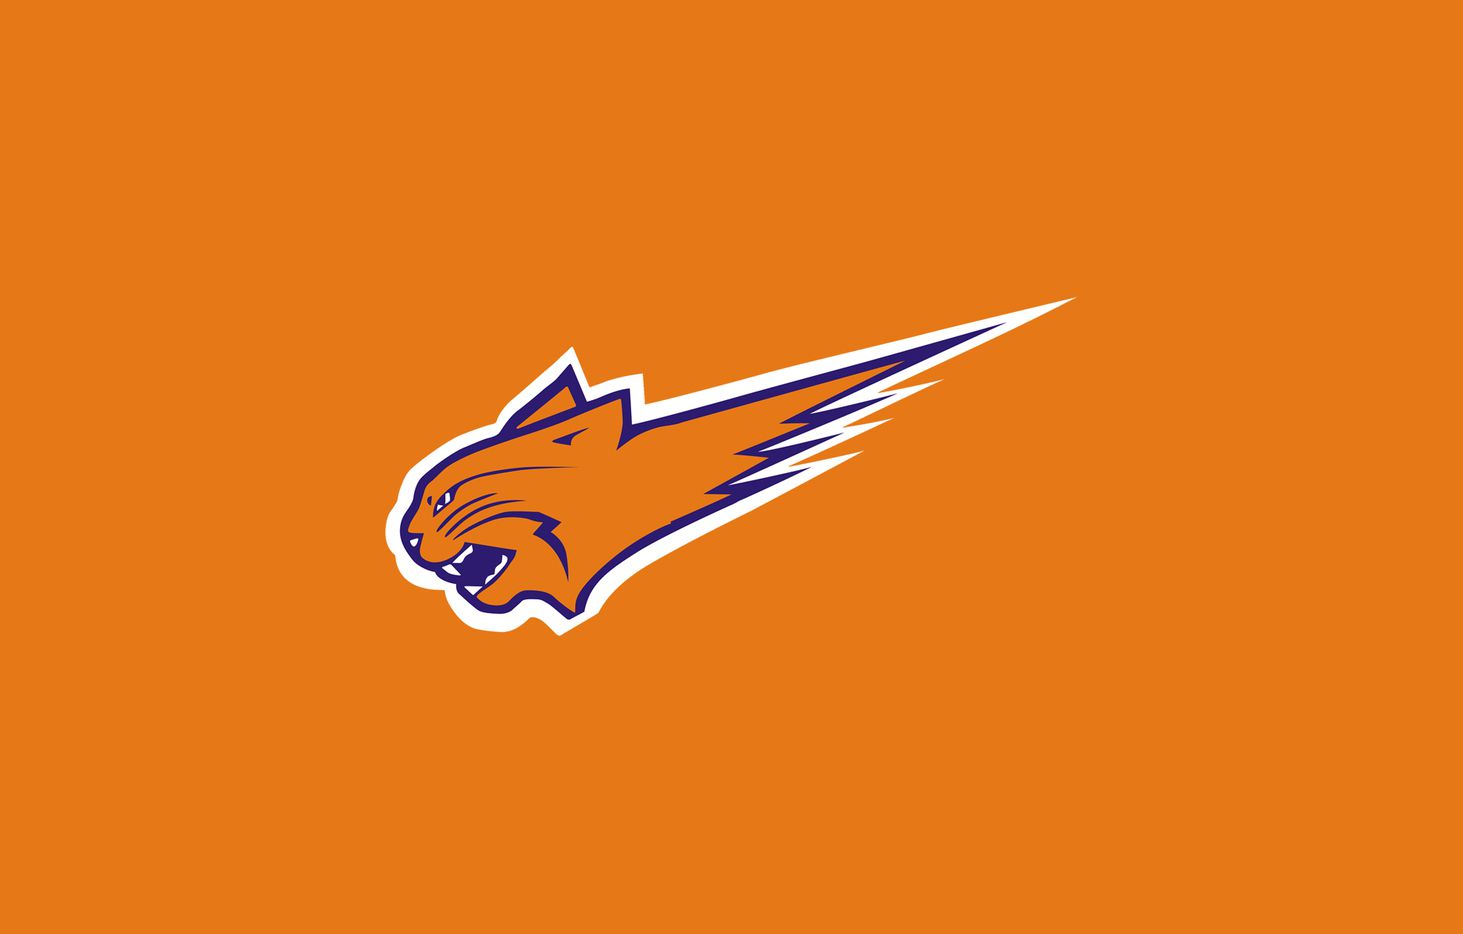 San Angelo Central logo.